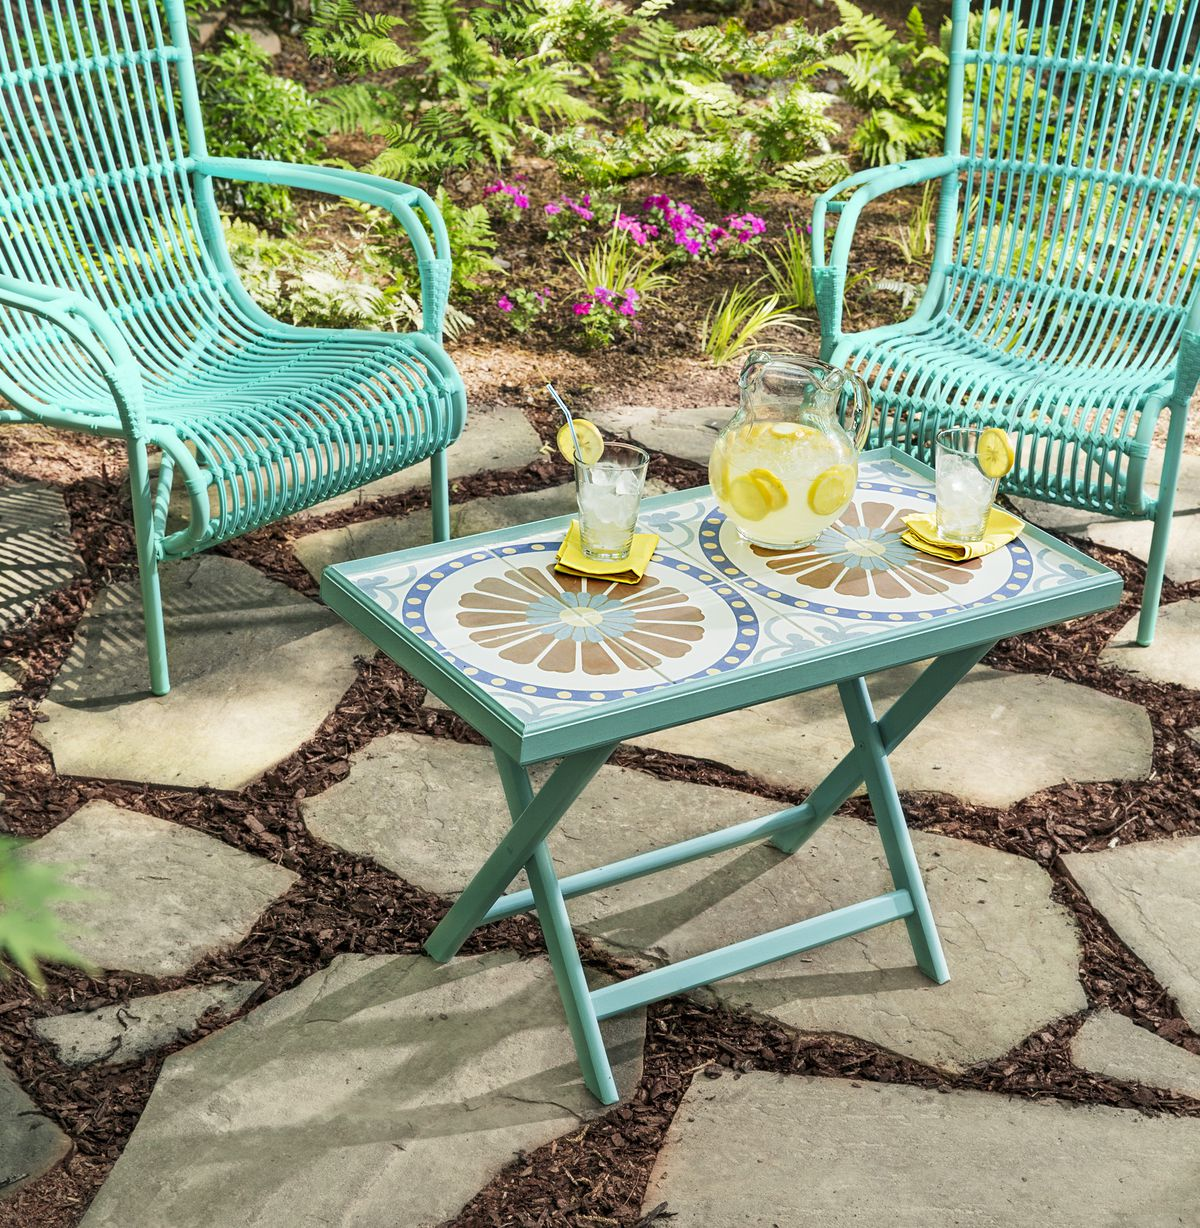 Tiled tabletop with chairs.